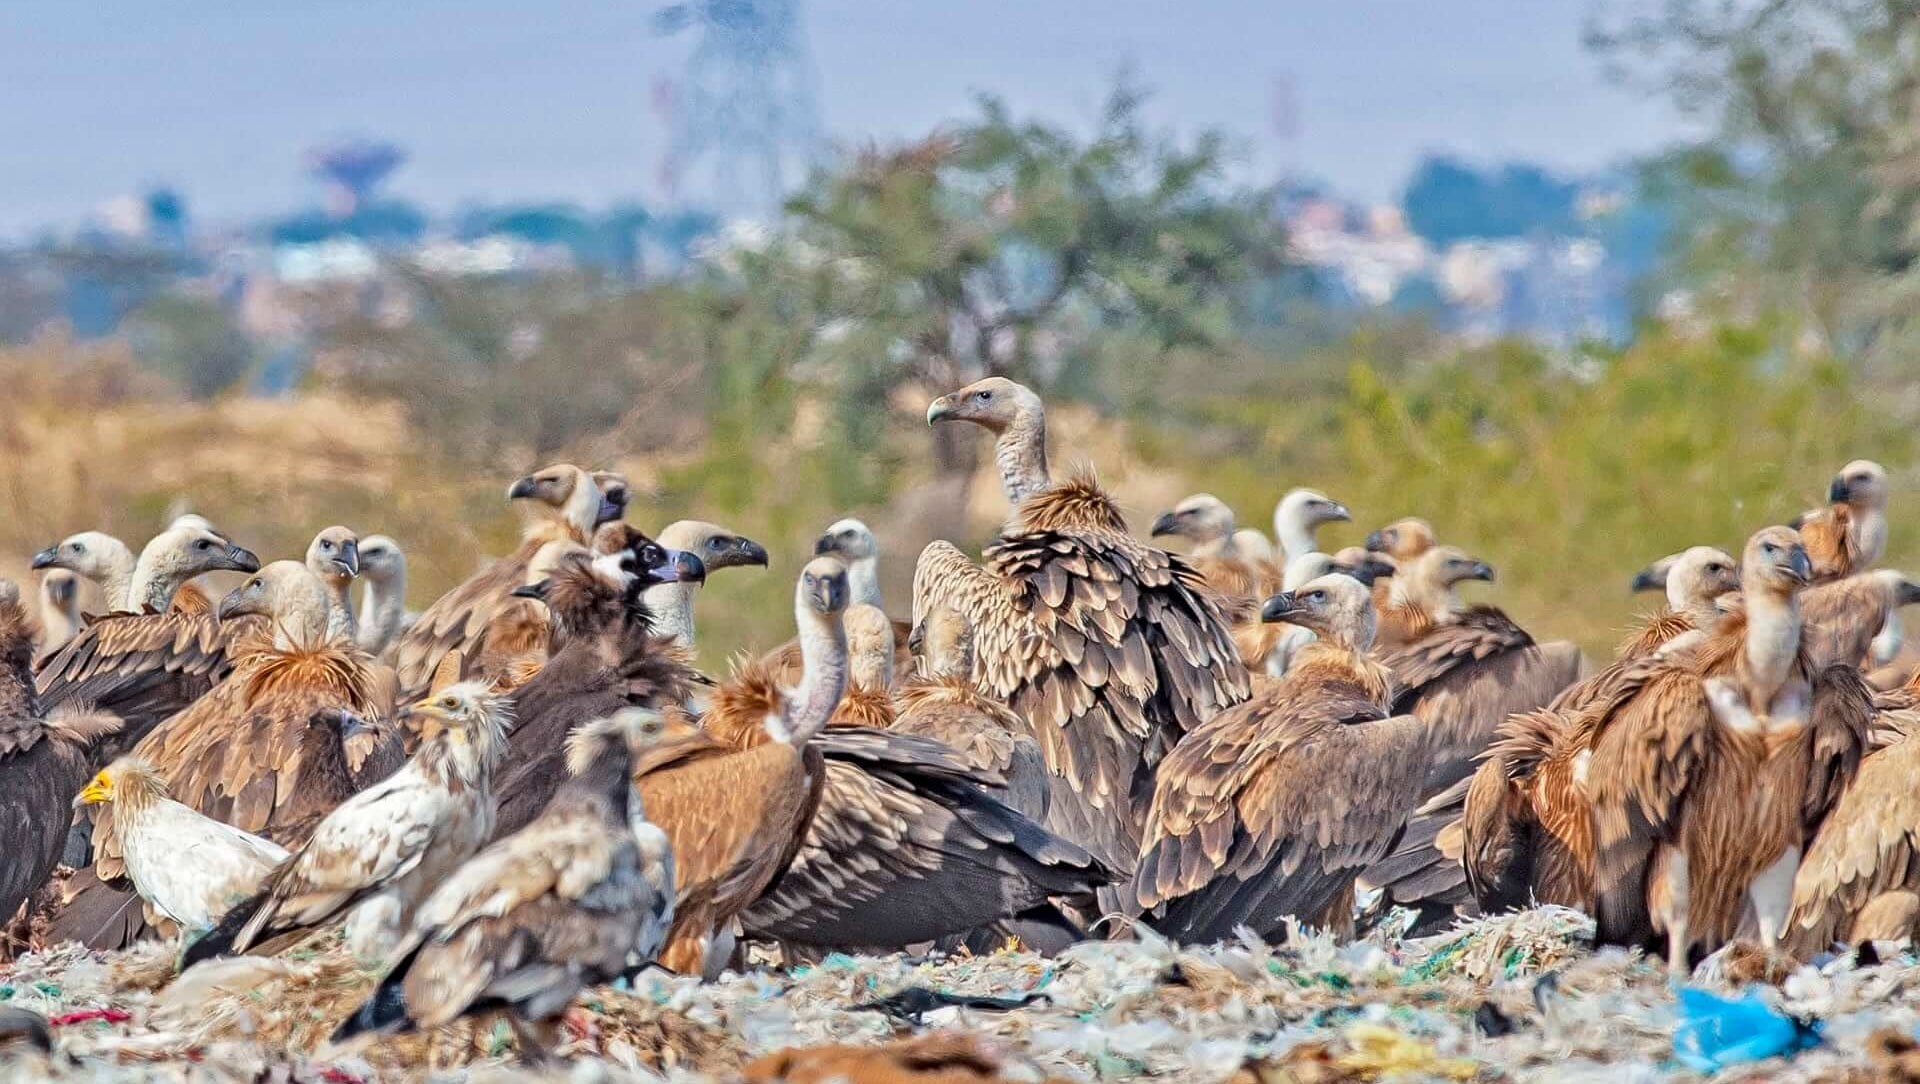 Keep Calm and Carrion: The Great Vulture Gathering in Jorbeed, Rajasthan